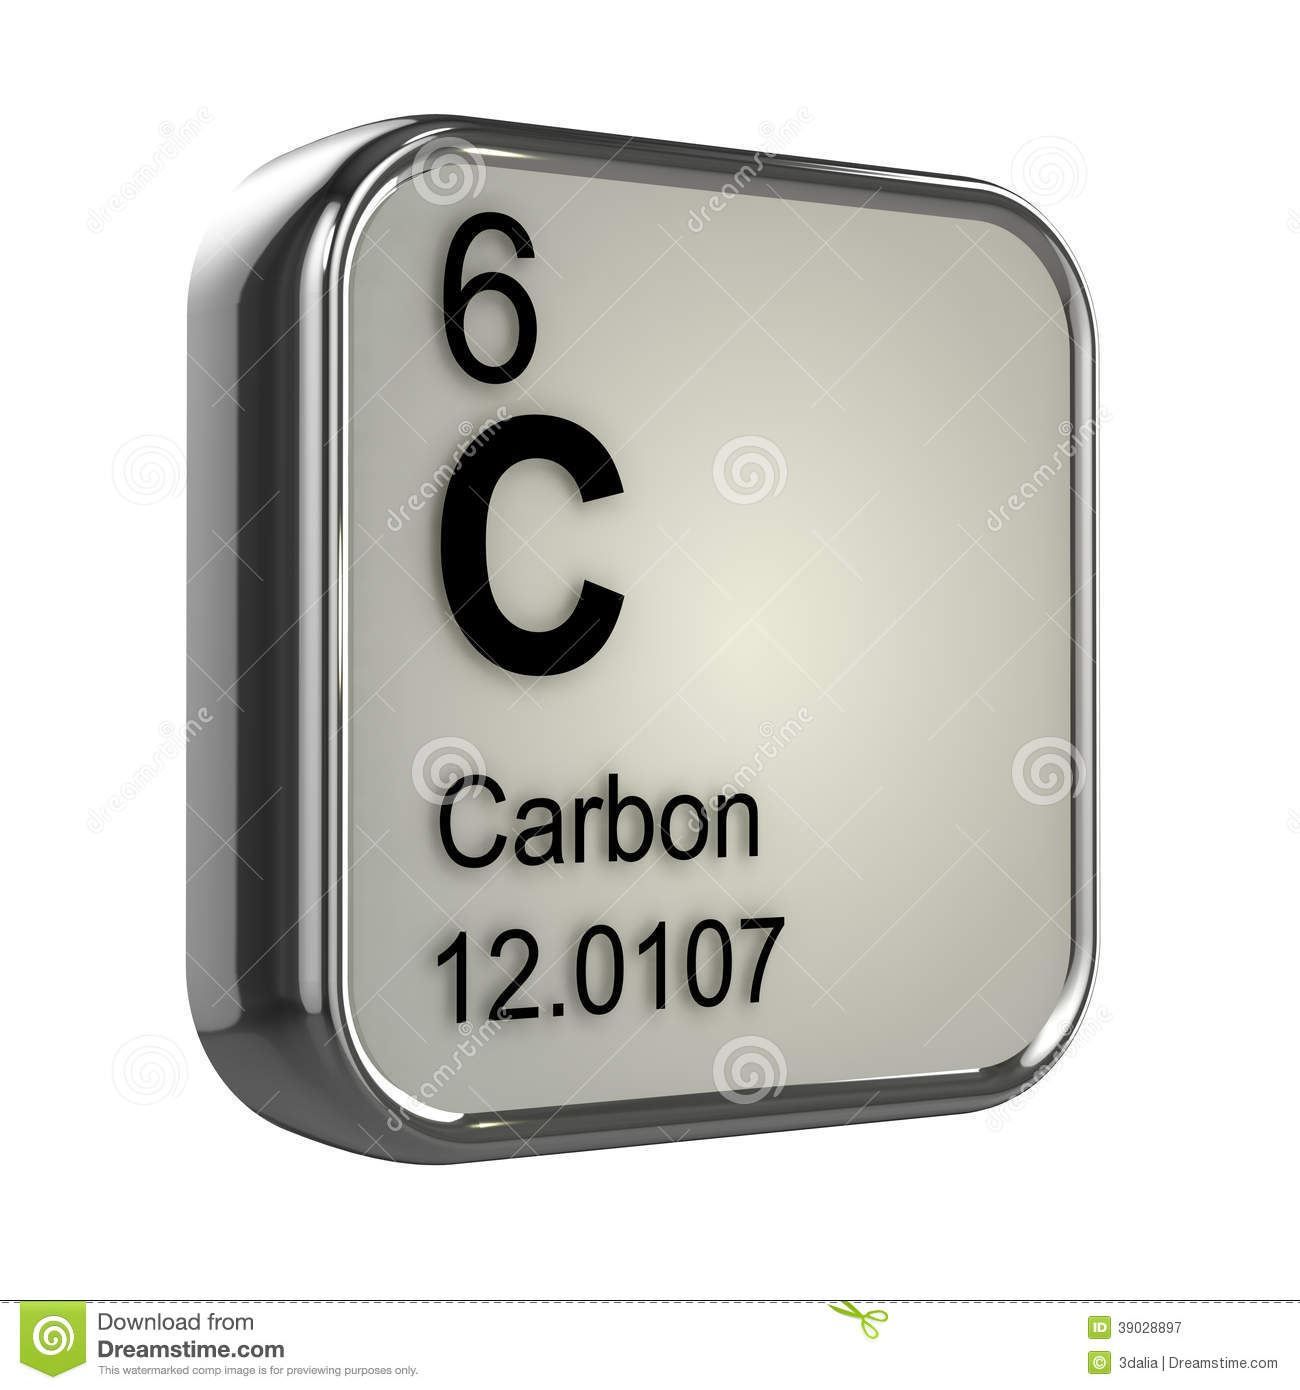 3d render of the carbon element from the periodic table.